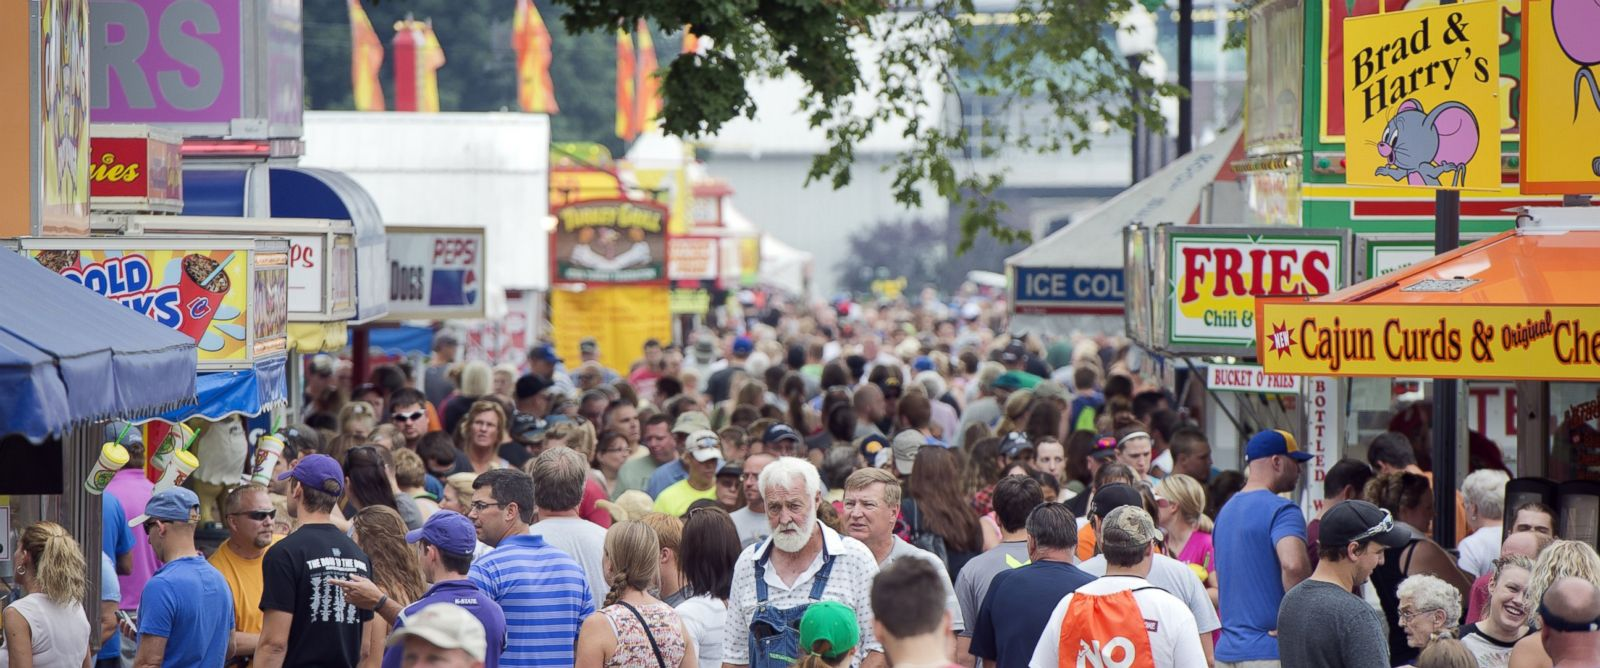 PHOTO: Guests walk though the 2014 Iowa State Fair in Des Moines, Iowa on Aug. 9, 2014.